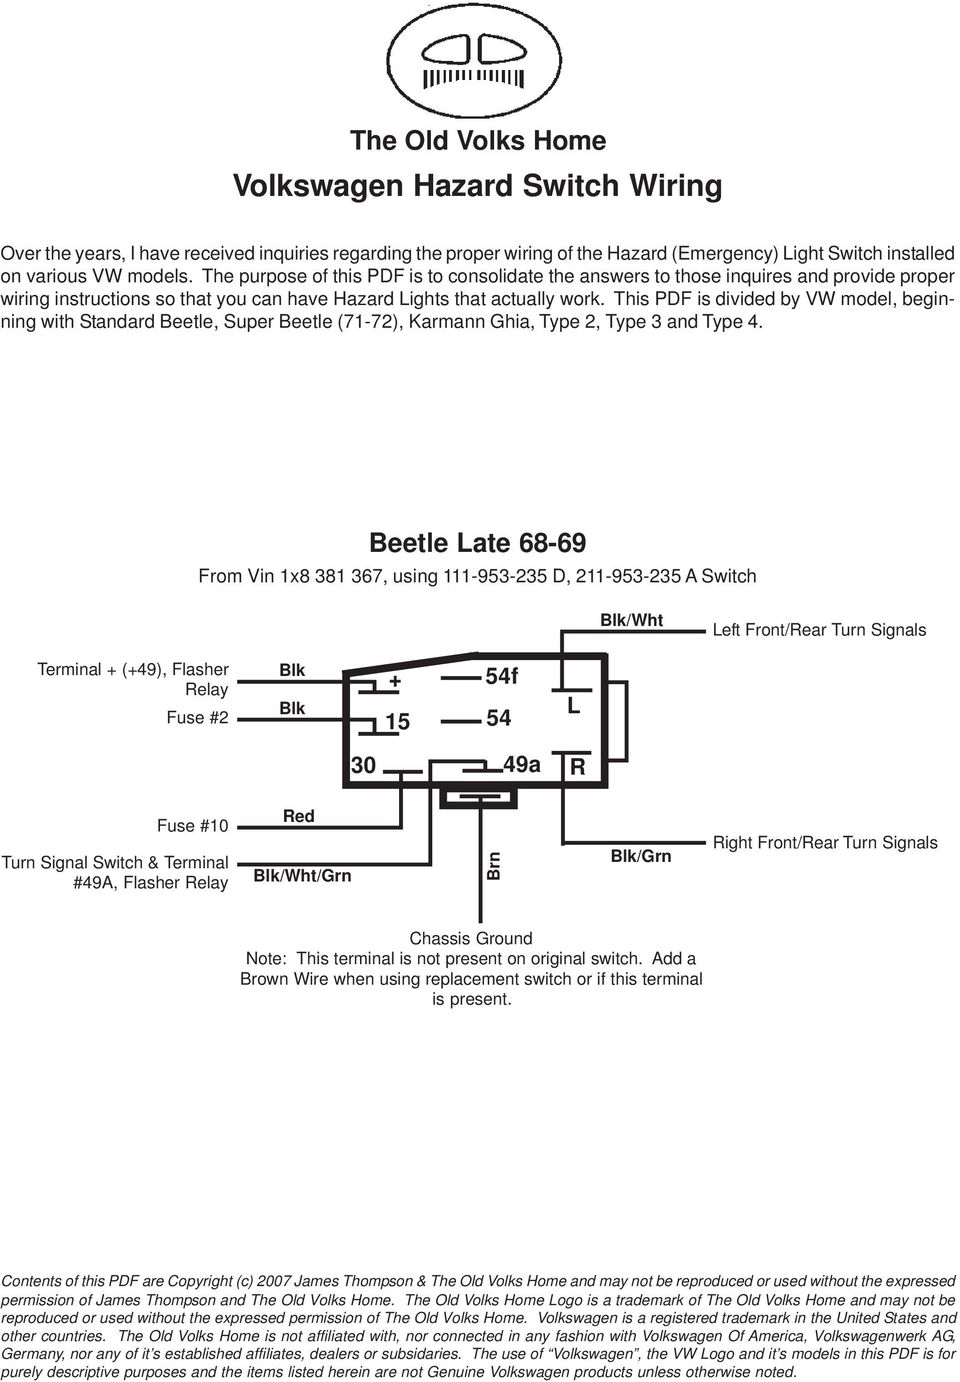 Volkswagen Hazard Switch Wiring Pdf Mini Cooper Diagram This Is Divided By Vw Model Beginning With Standard Beetle Super